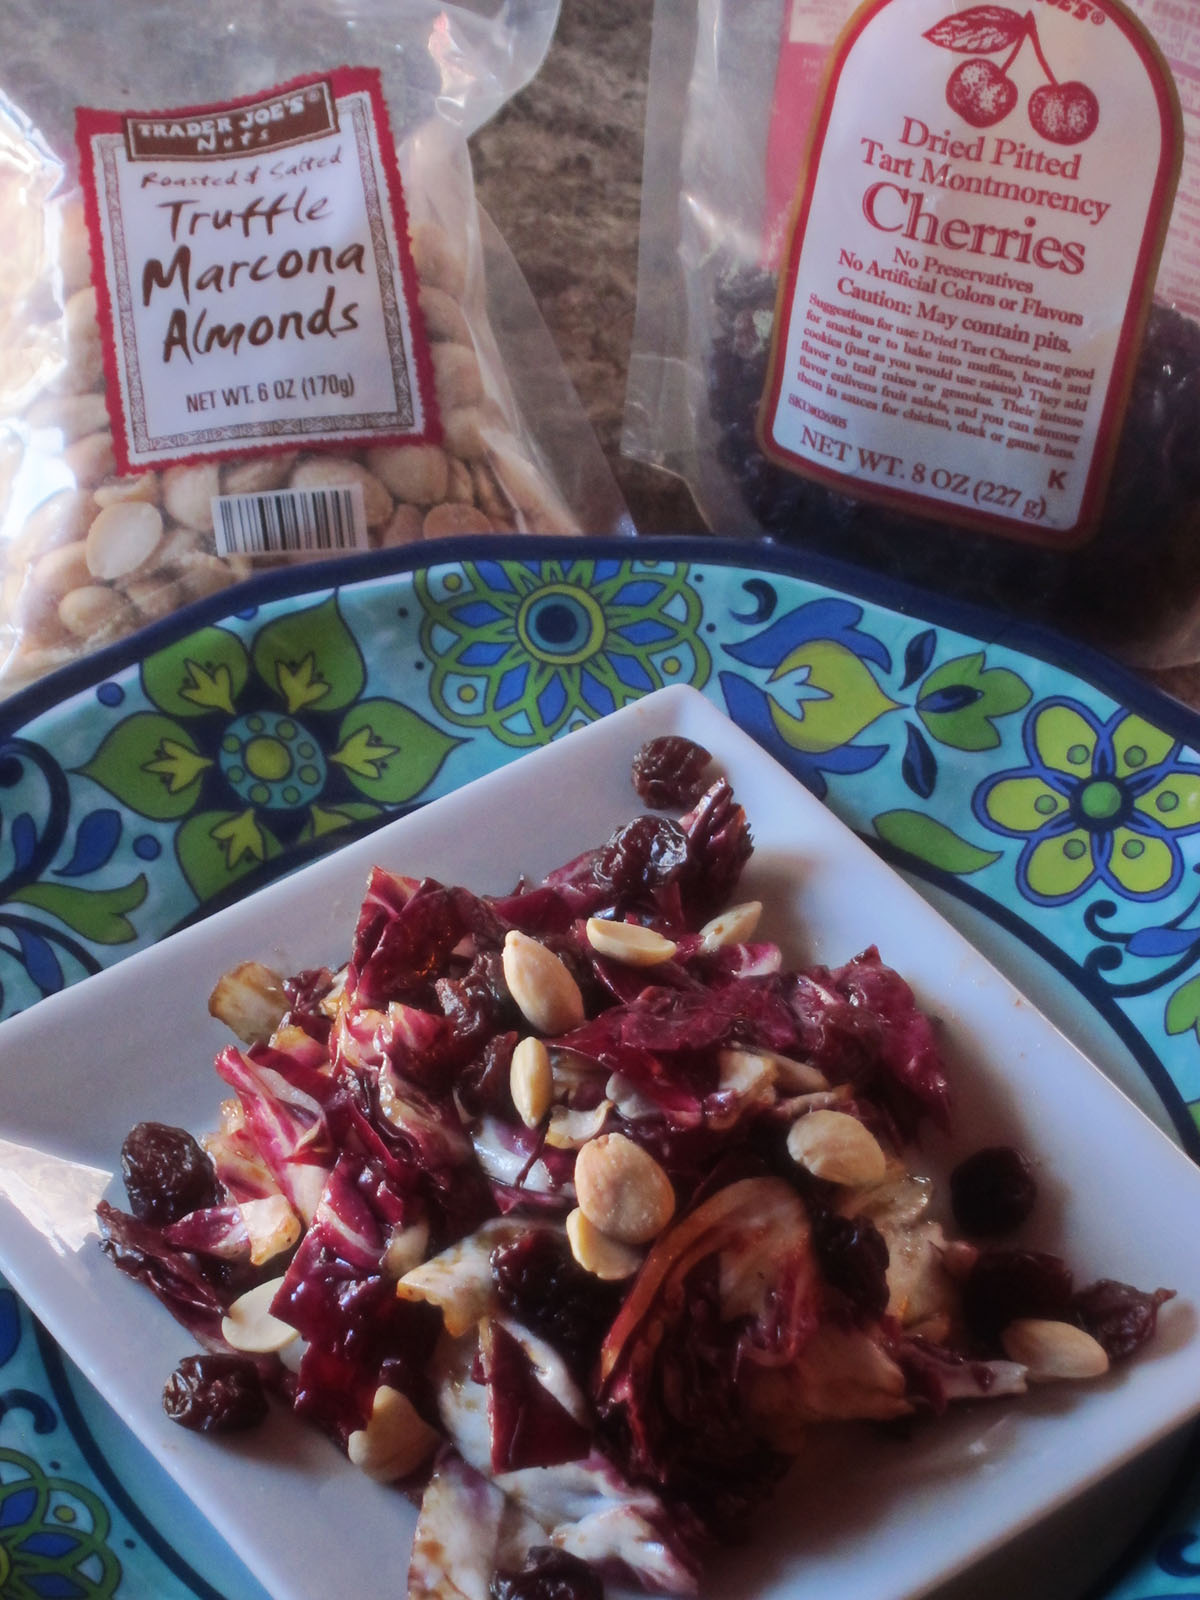 Radicchio Salad with Montmorency Cherries, Marcona Almonds and Violet Balsamic Vinegar